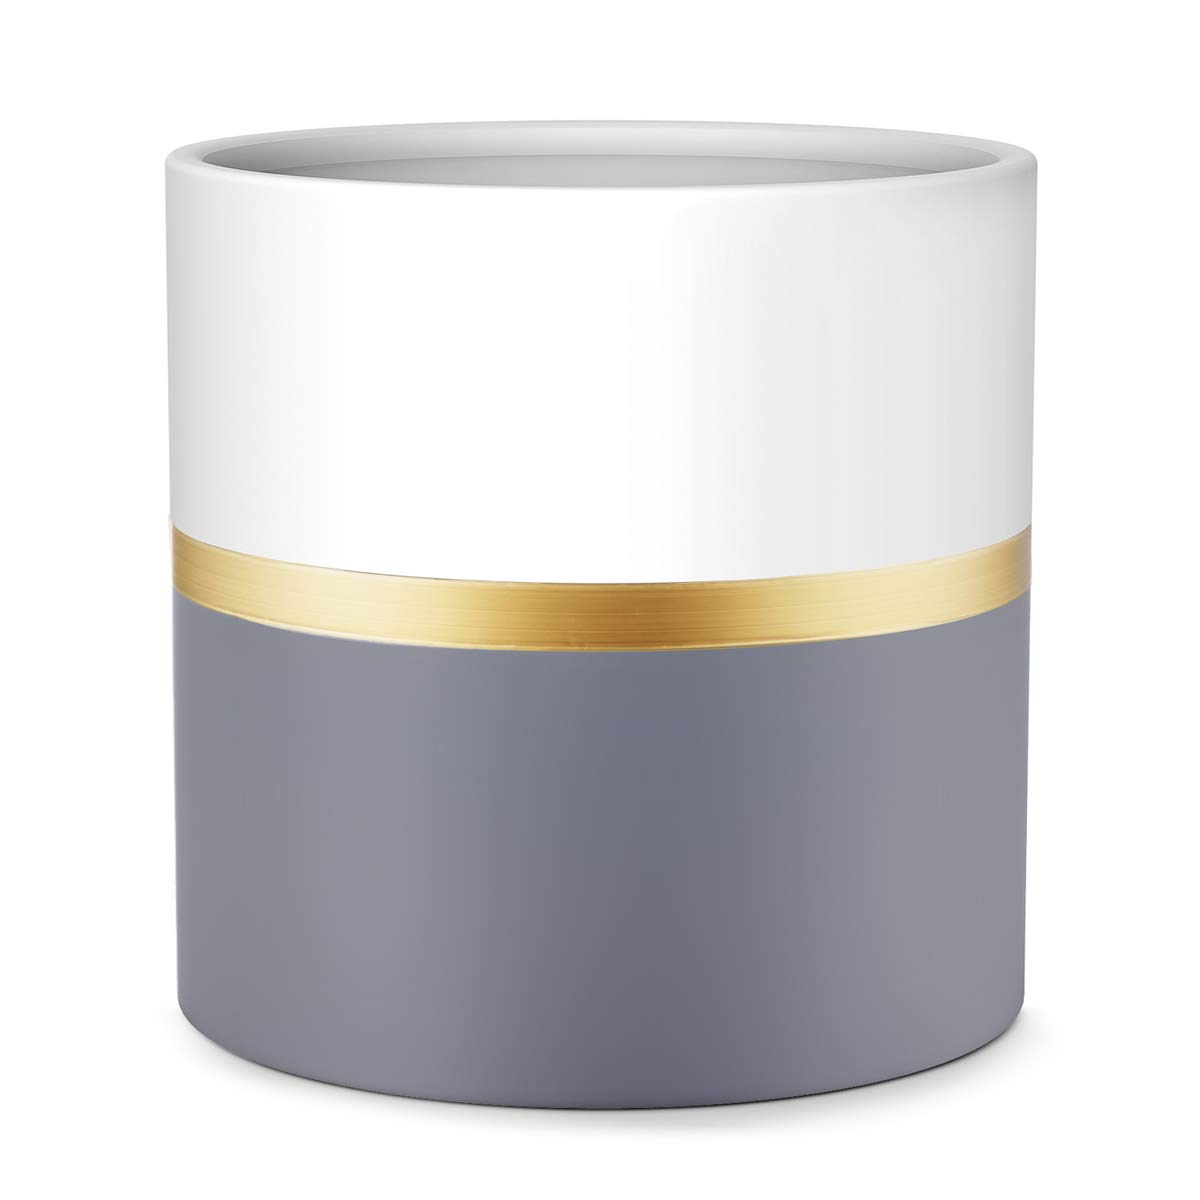 10'' Plant Pot by HOMENOTE, Modern Large Planter with Drainage Plug - Gold and Grey Detailing - Perfect Fits Mid Century Plant Stand